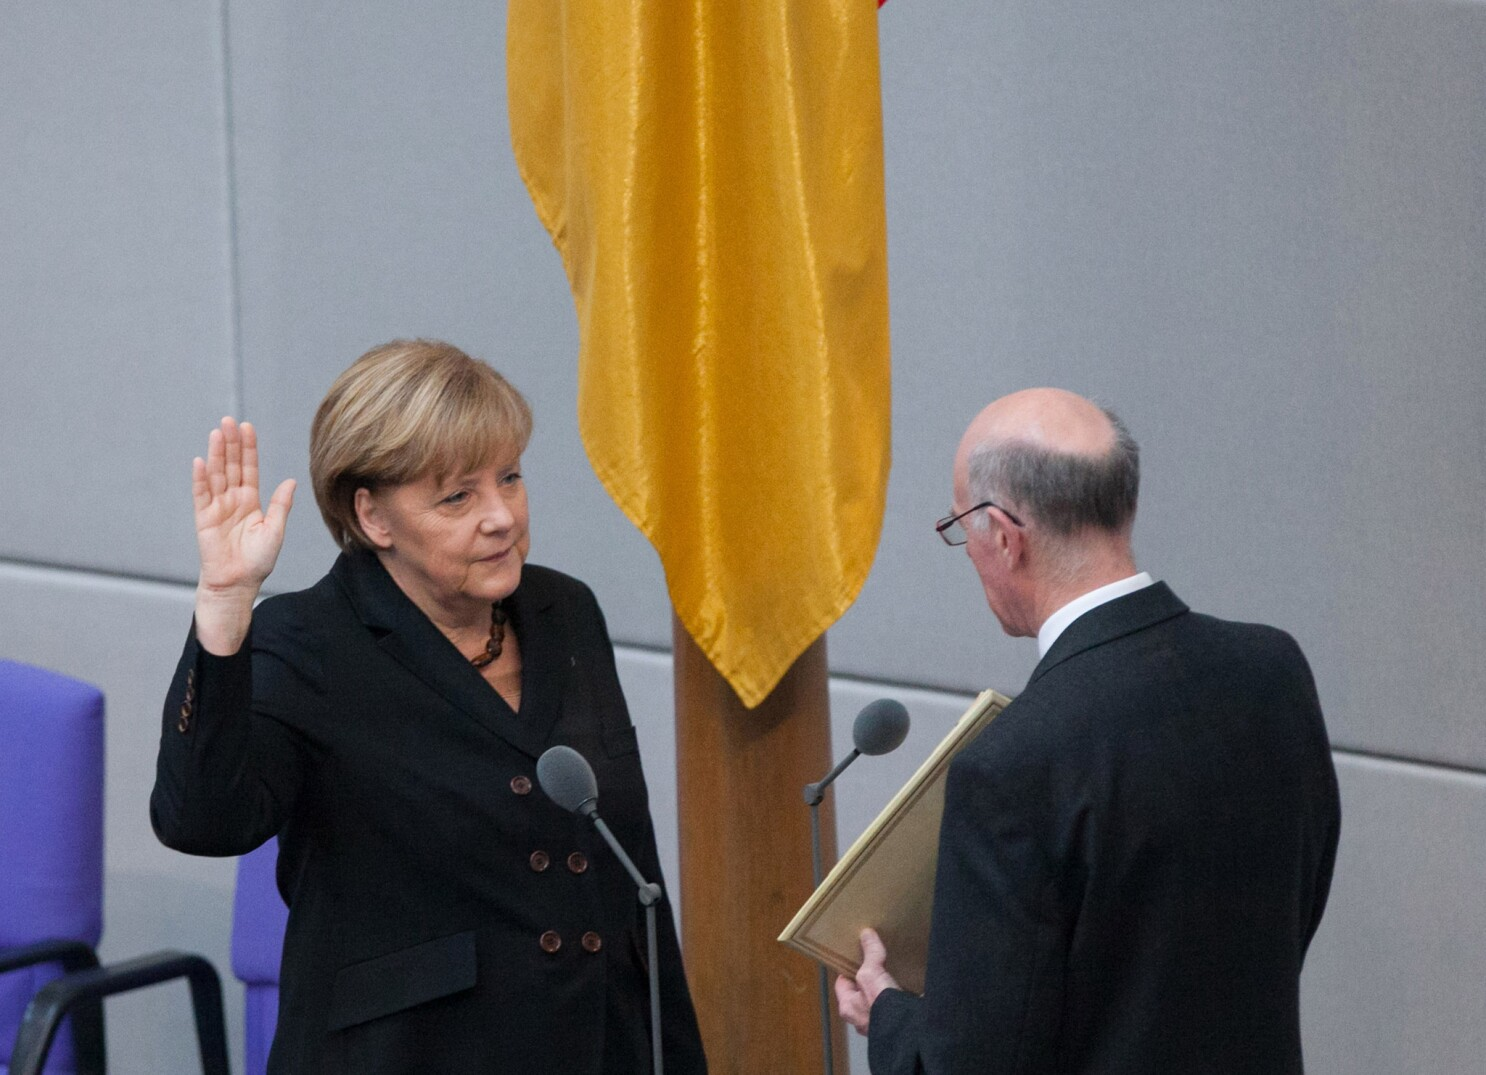 Angela Merkel Is Sworn In For A Third Term As German Chancellor Los Angeles Times